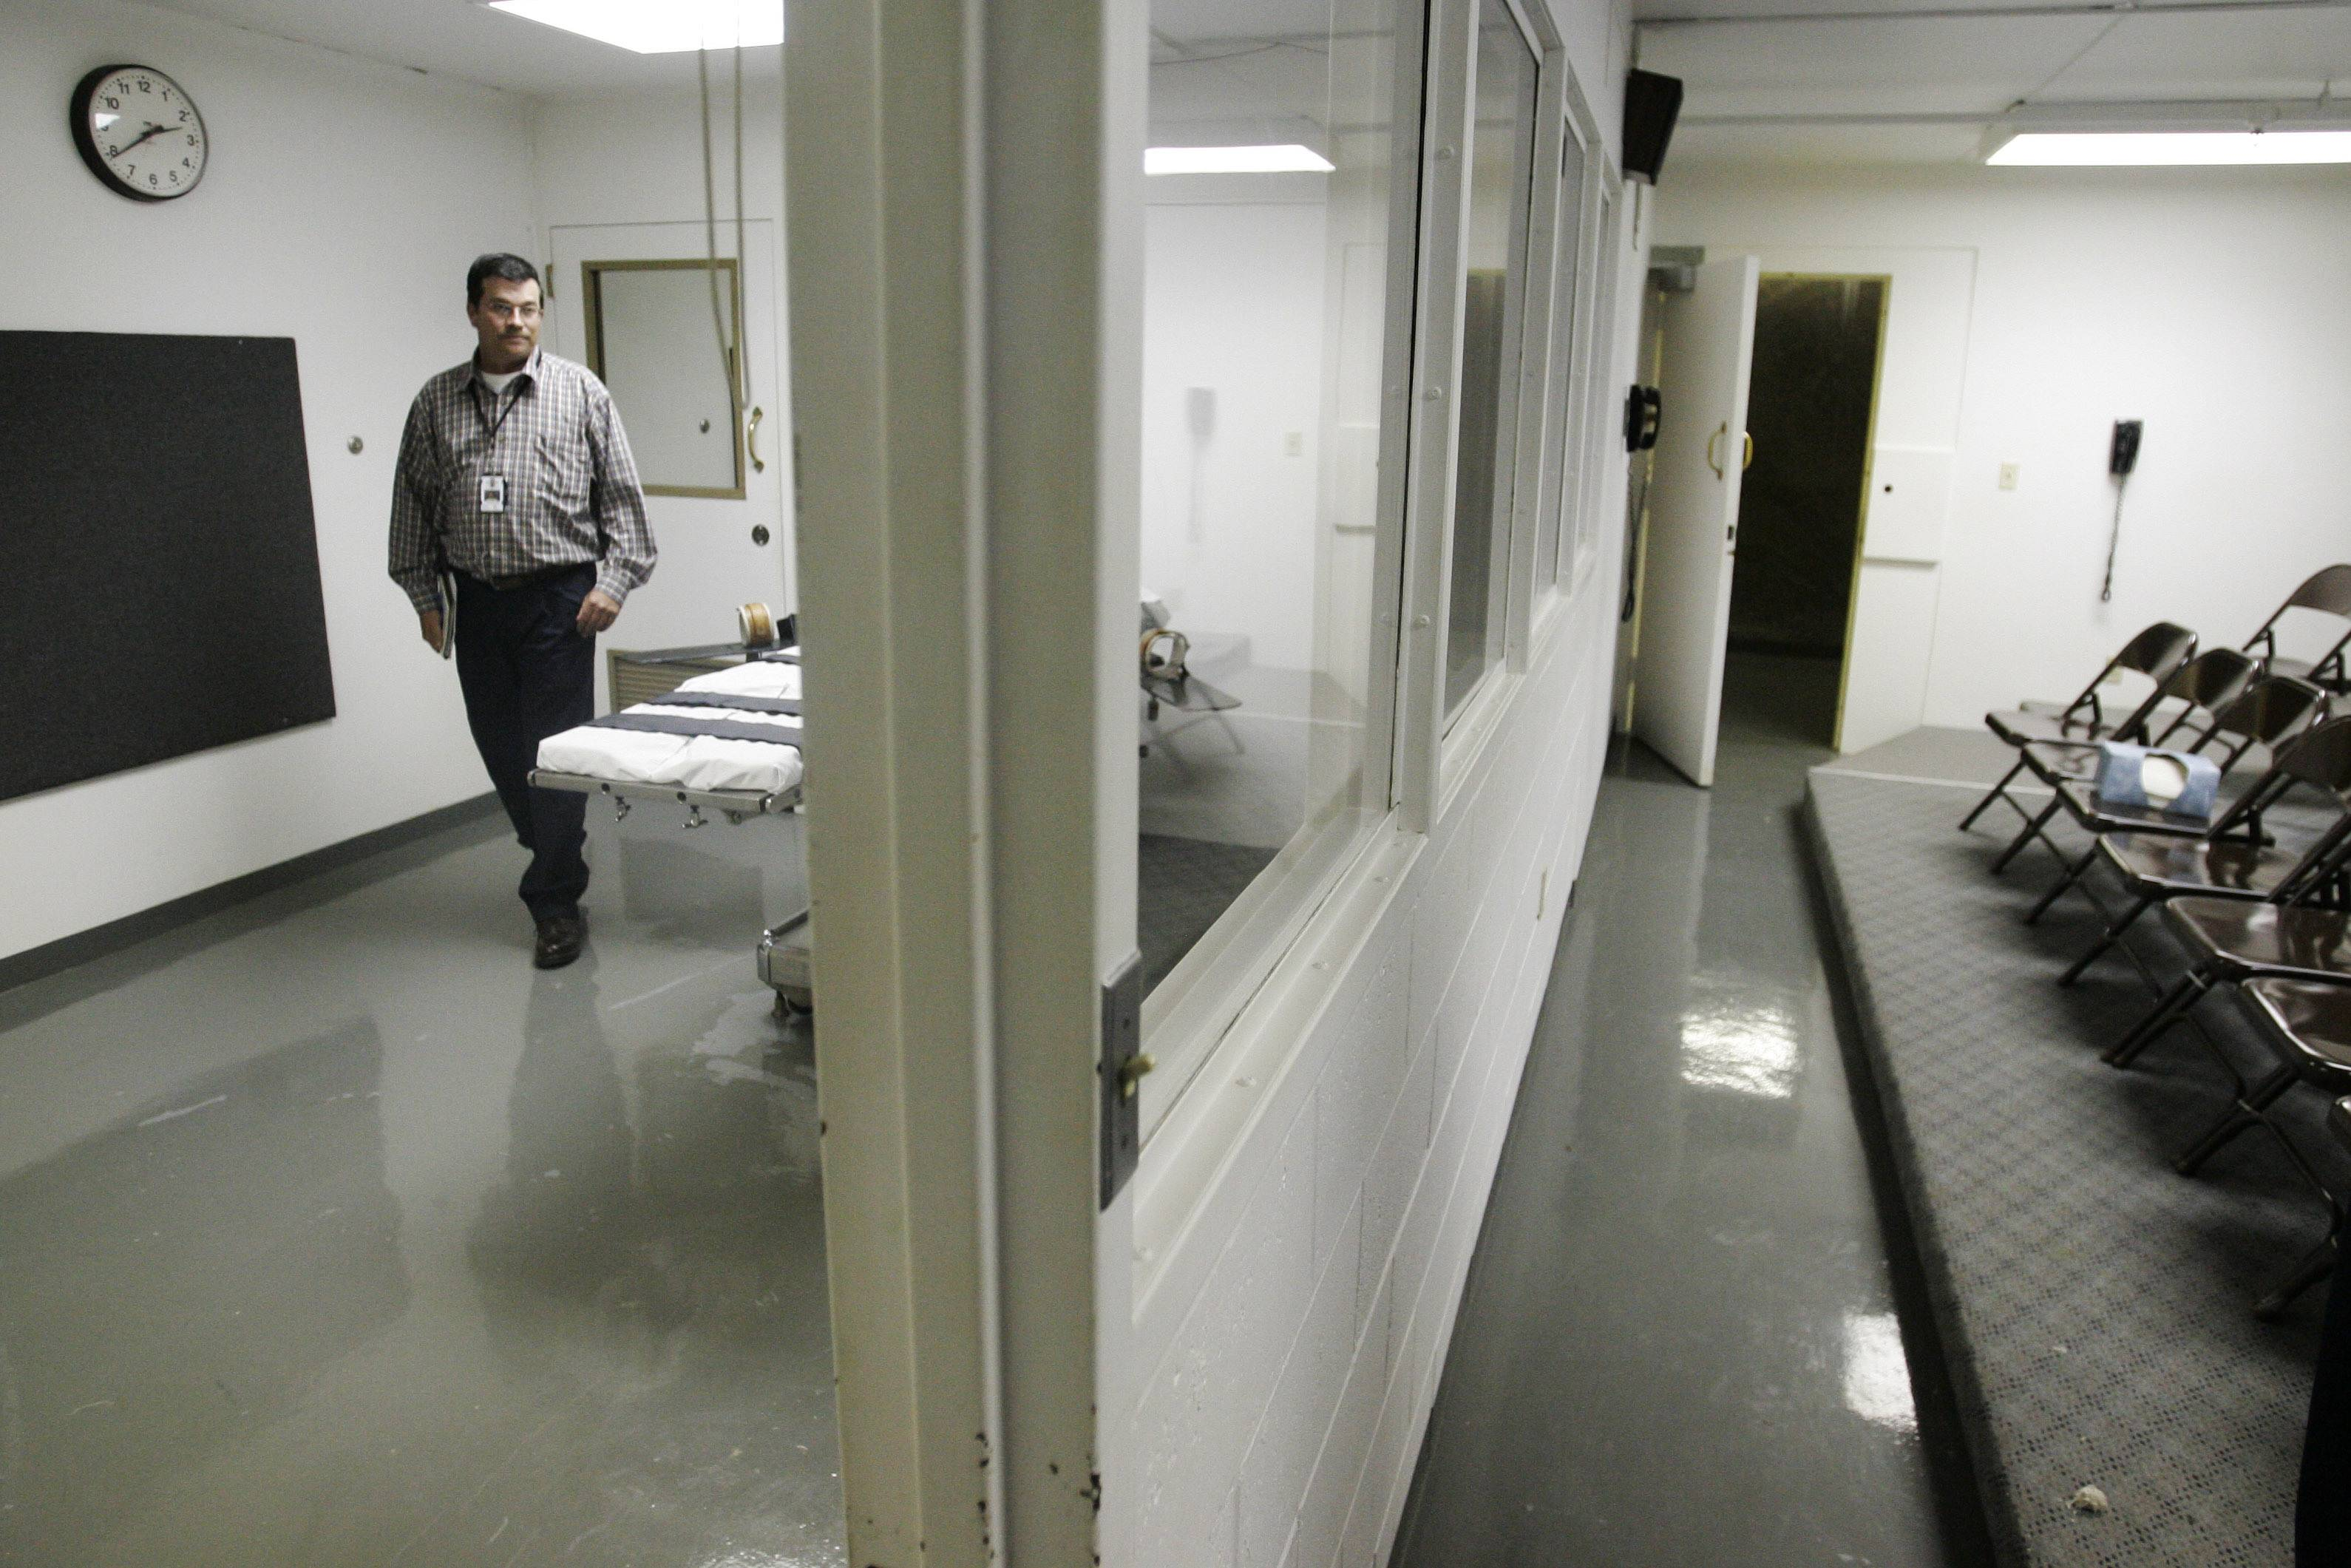 The Oklahoma State Penitentiary execution chambe. Oklahoma prison officials tried for 51 minutes to find a vein in a death row inmate's arms and feet before inserting an IV through the man's groin ahead of a botched execution this week, the state's prisons chief said Thursday in a report urging more oversight of executions.